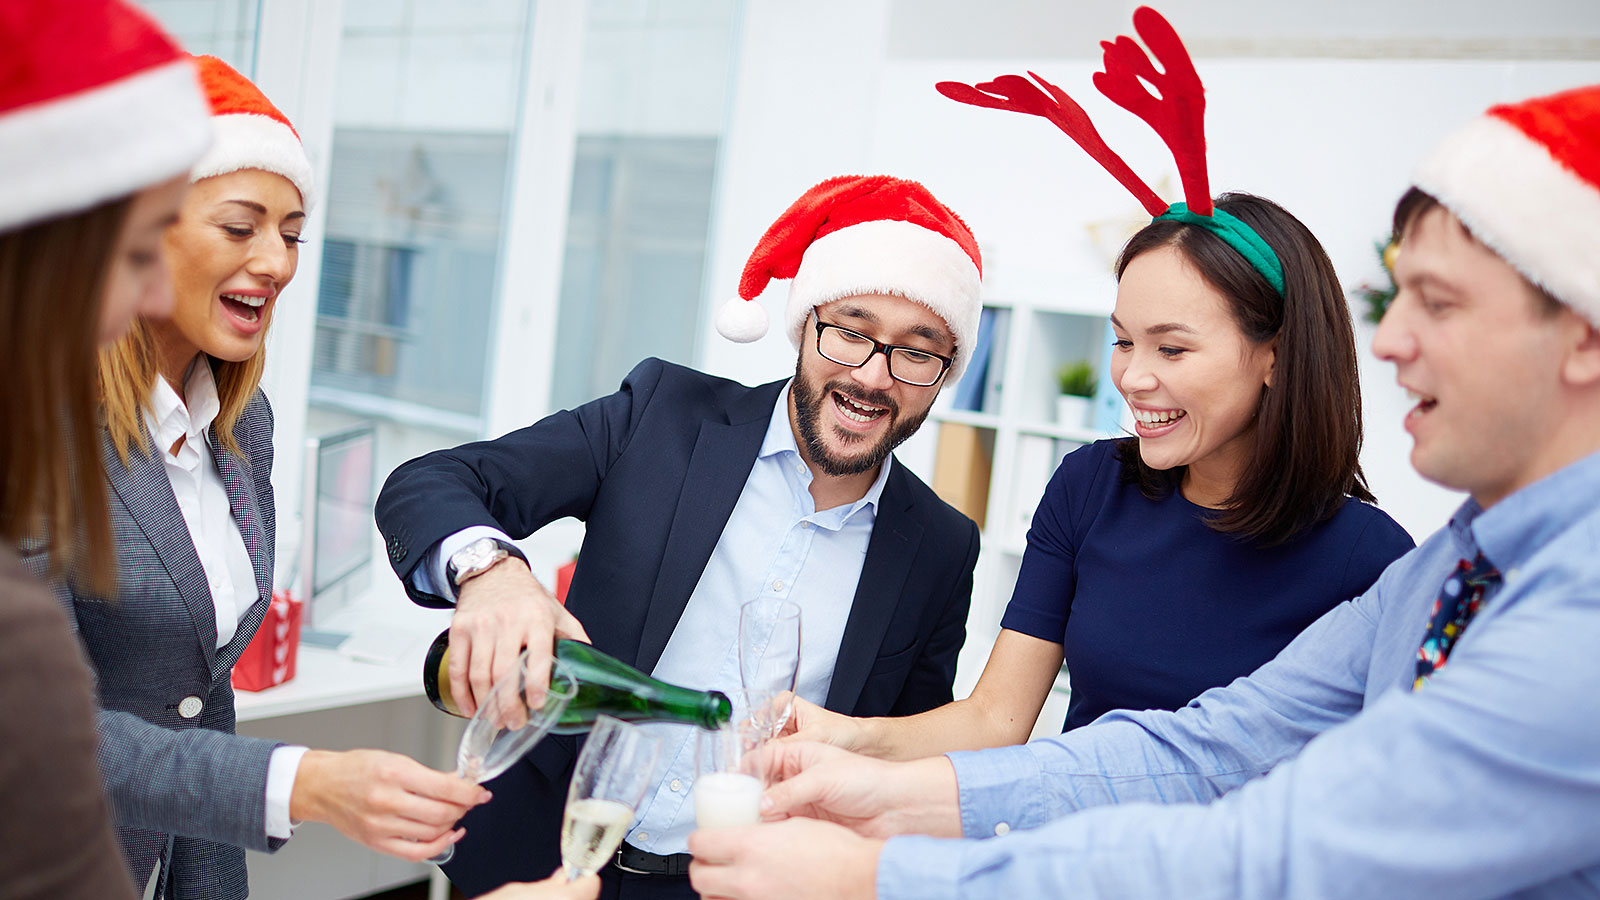 An HR expert's 9 tips to avoid getting in trouble at the office holiday party